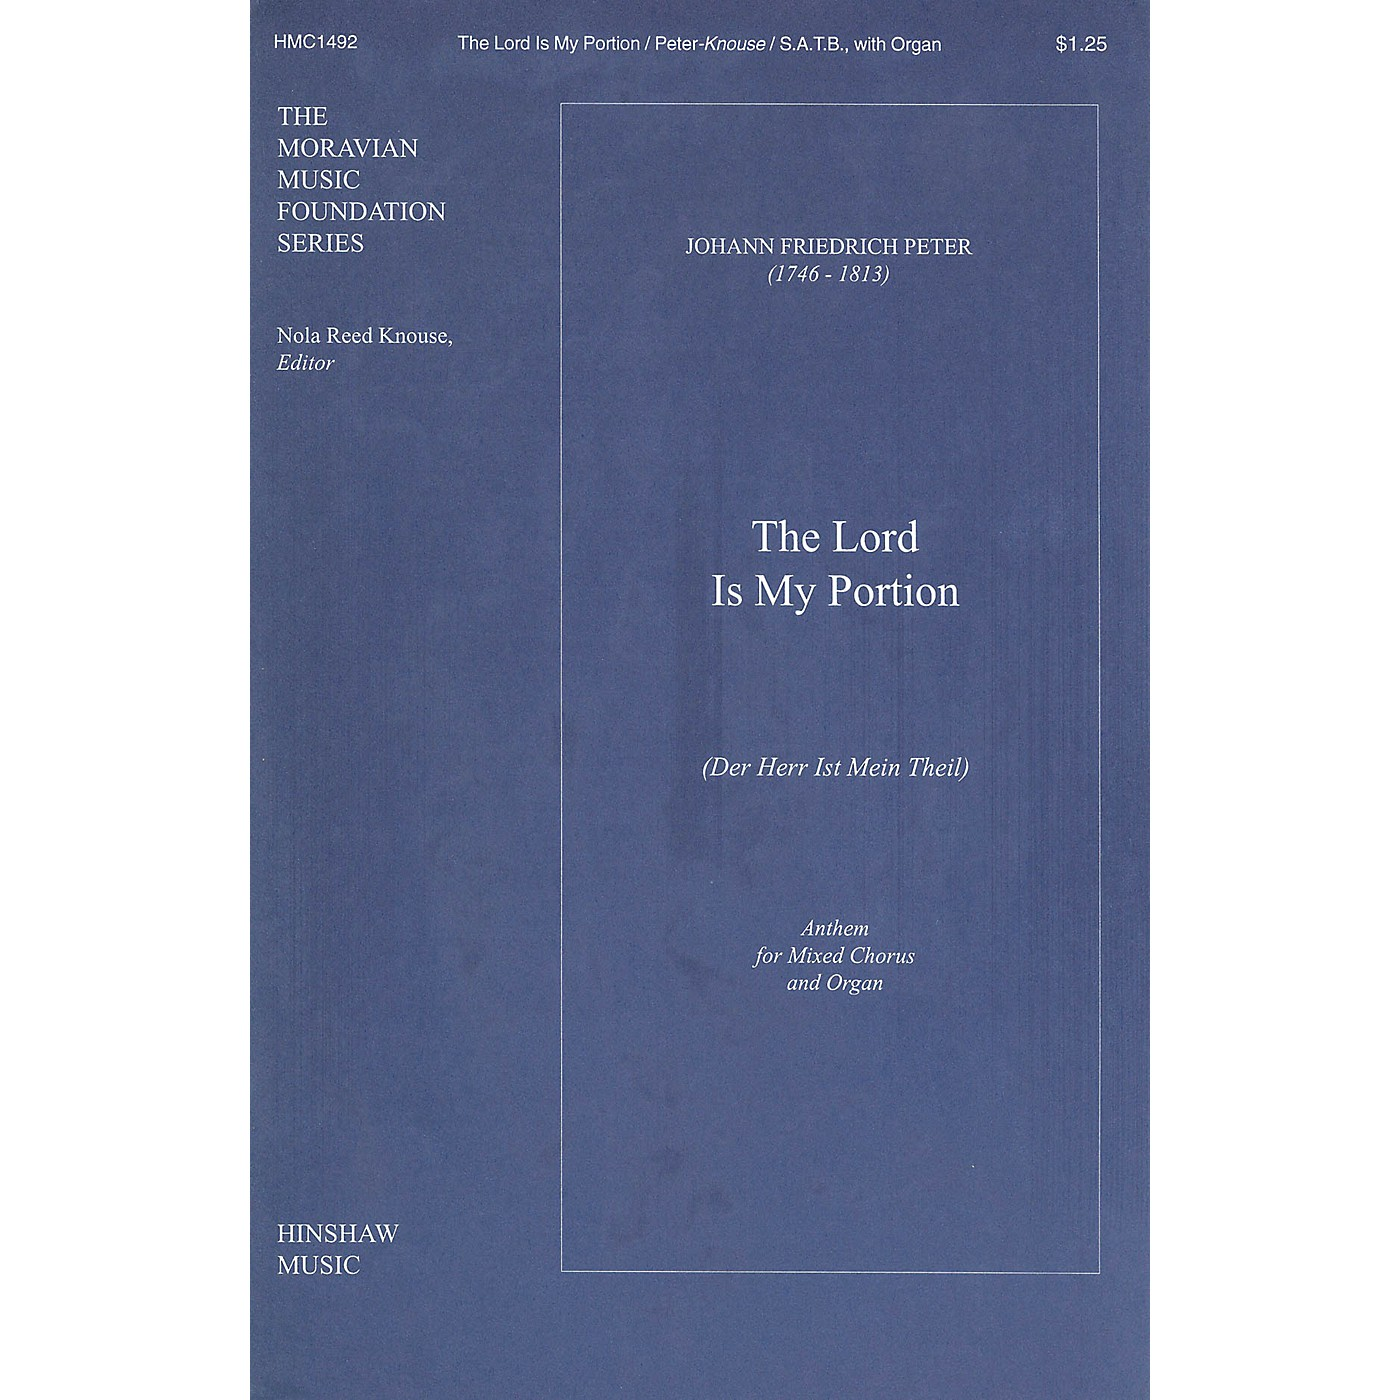 Hinshaw Music The Lord Is My Portion (Der Herr Ist Mein Theil) SATB composed by Peter thumbnail